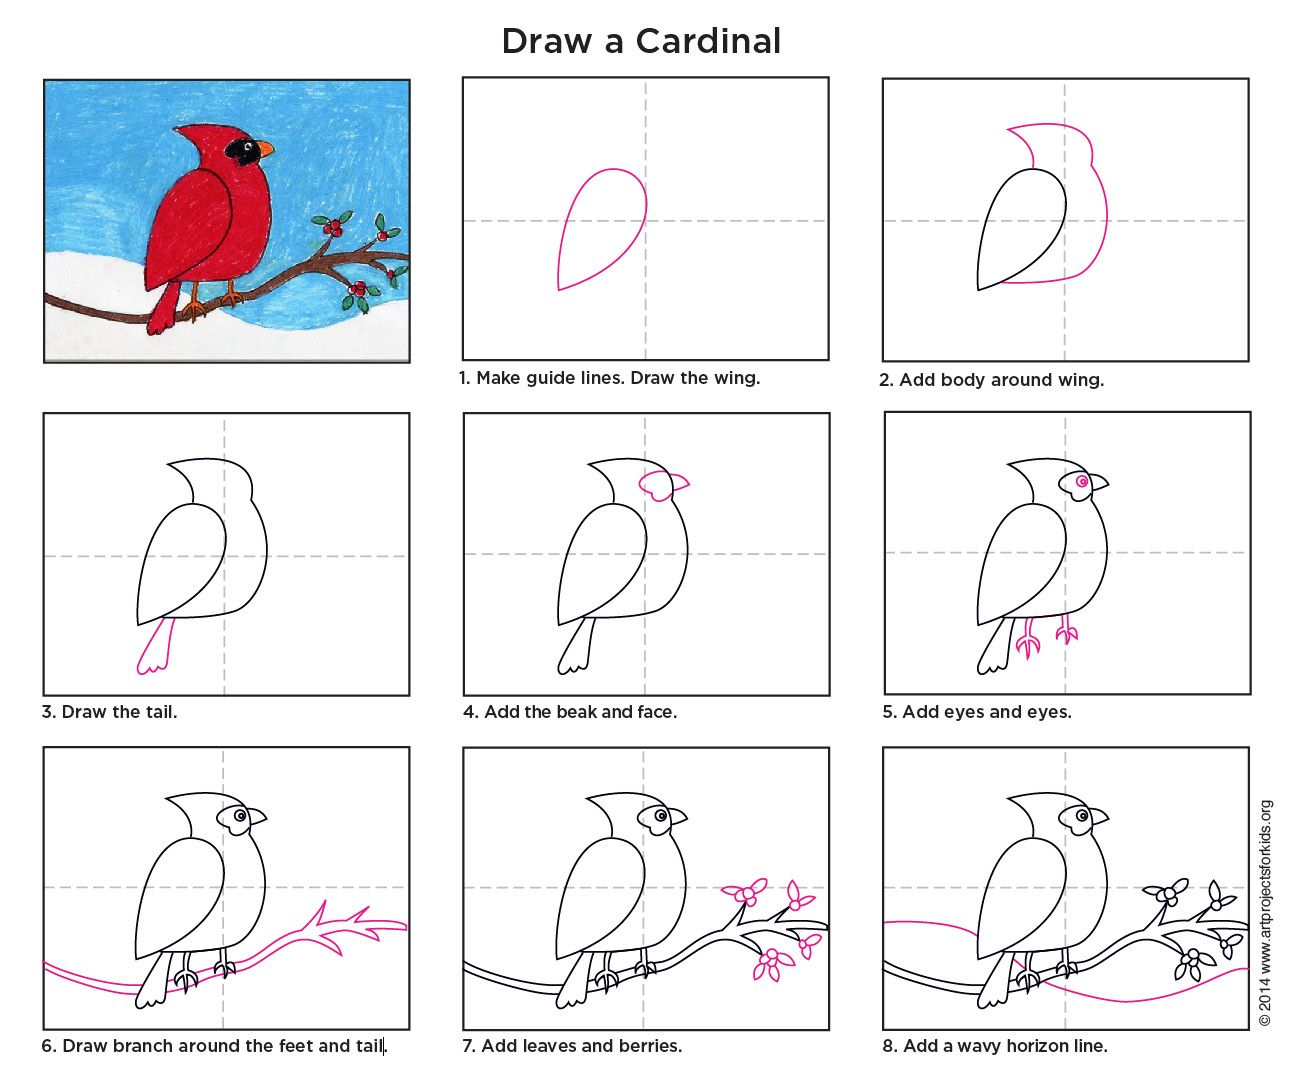 Cardinal Art Projects For Kids Winter Art Lesson Elementary Art Projects Art Lessons